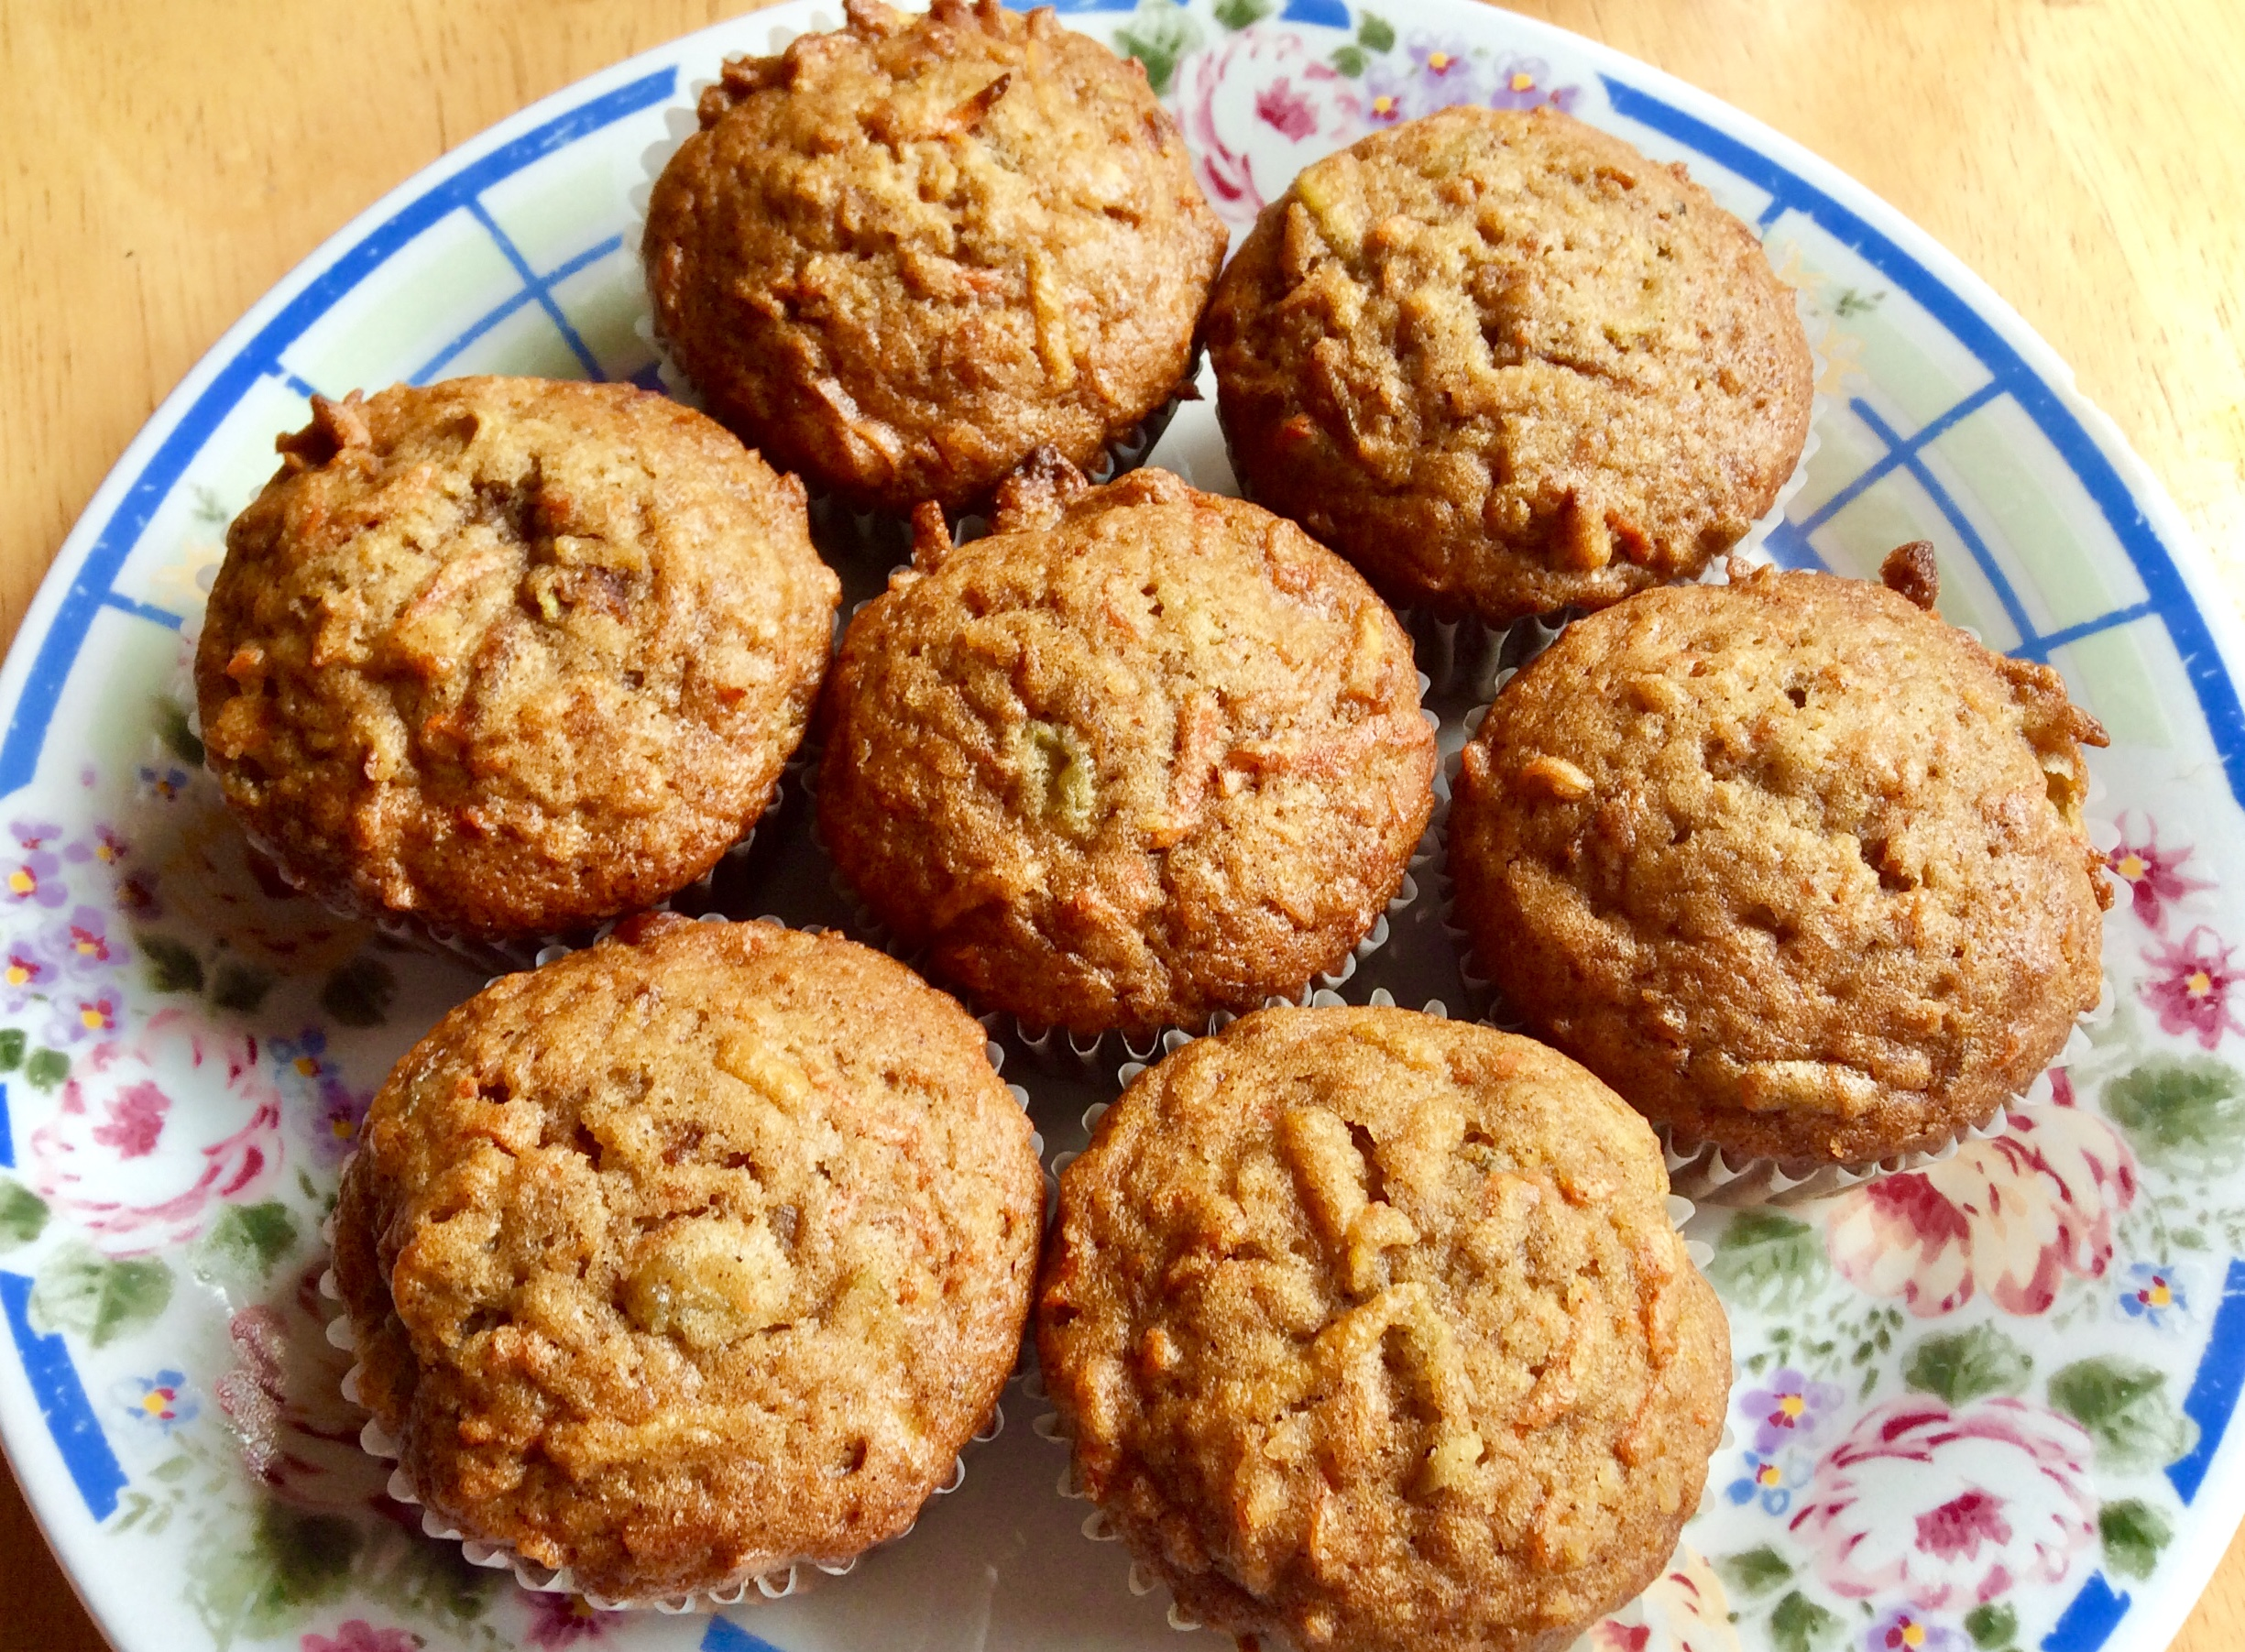 Morning Glory Muffins from Alexandersmom.com